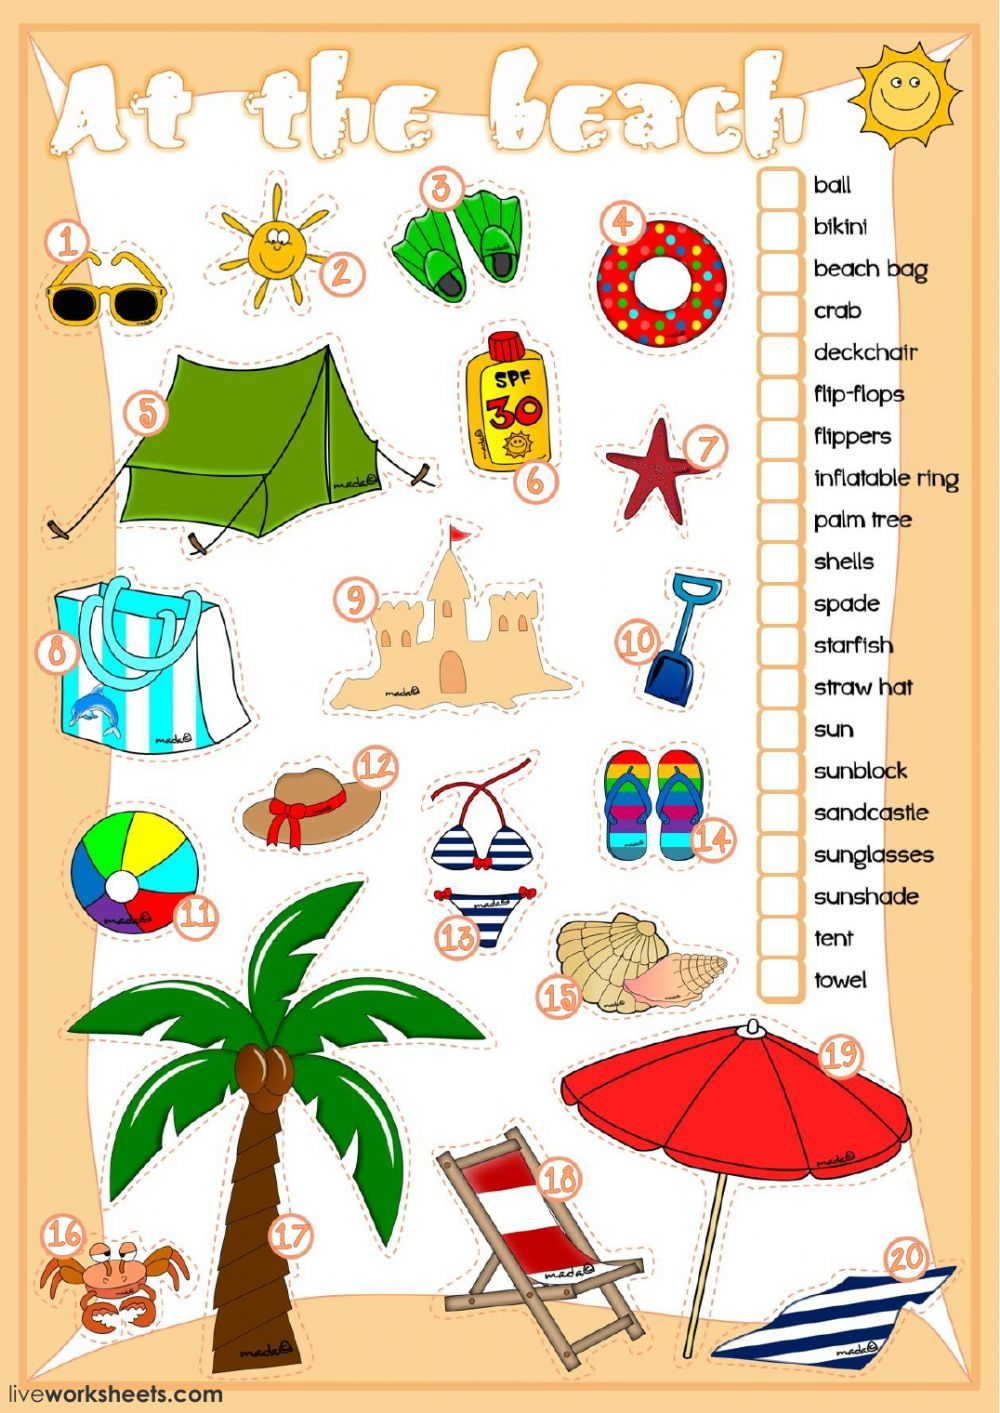 Beach Vocabulary Interactive And Downloadable Worksheet You Can Do The Exercises Online Or Downlo Vocabulary Flash Cards Summer Vocabulary Kids Speech Therapy [ 1413 x 1000 Pixel ]